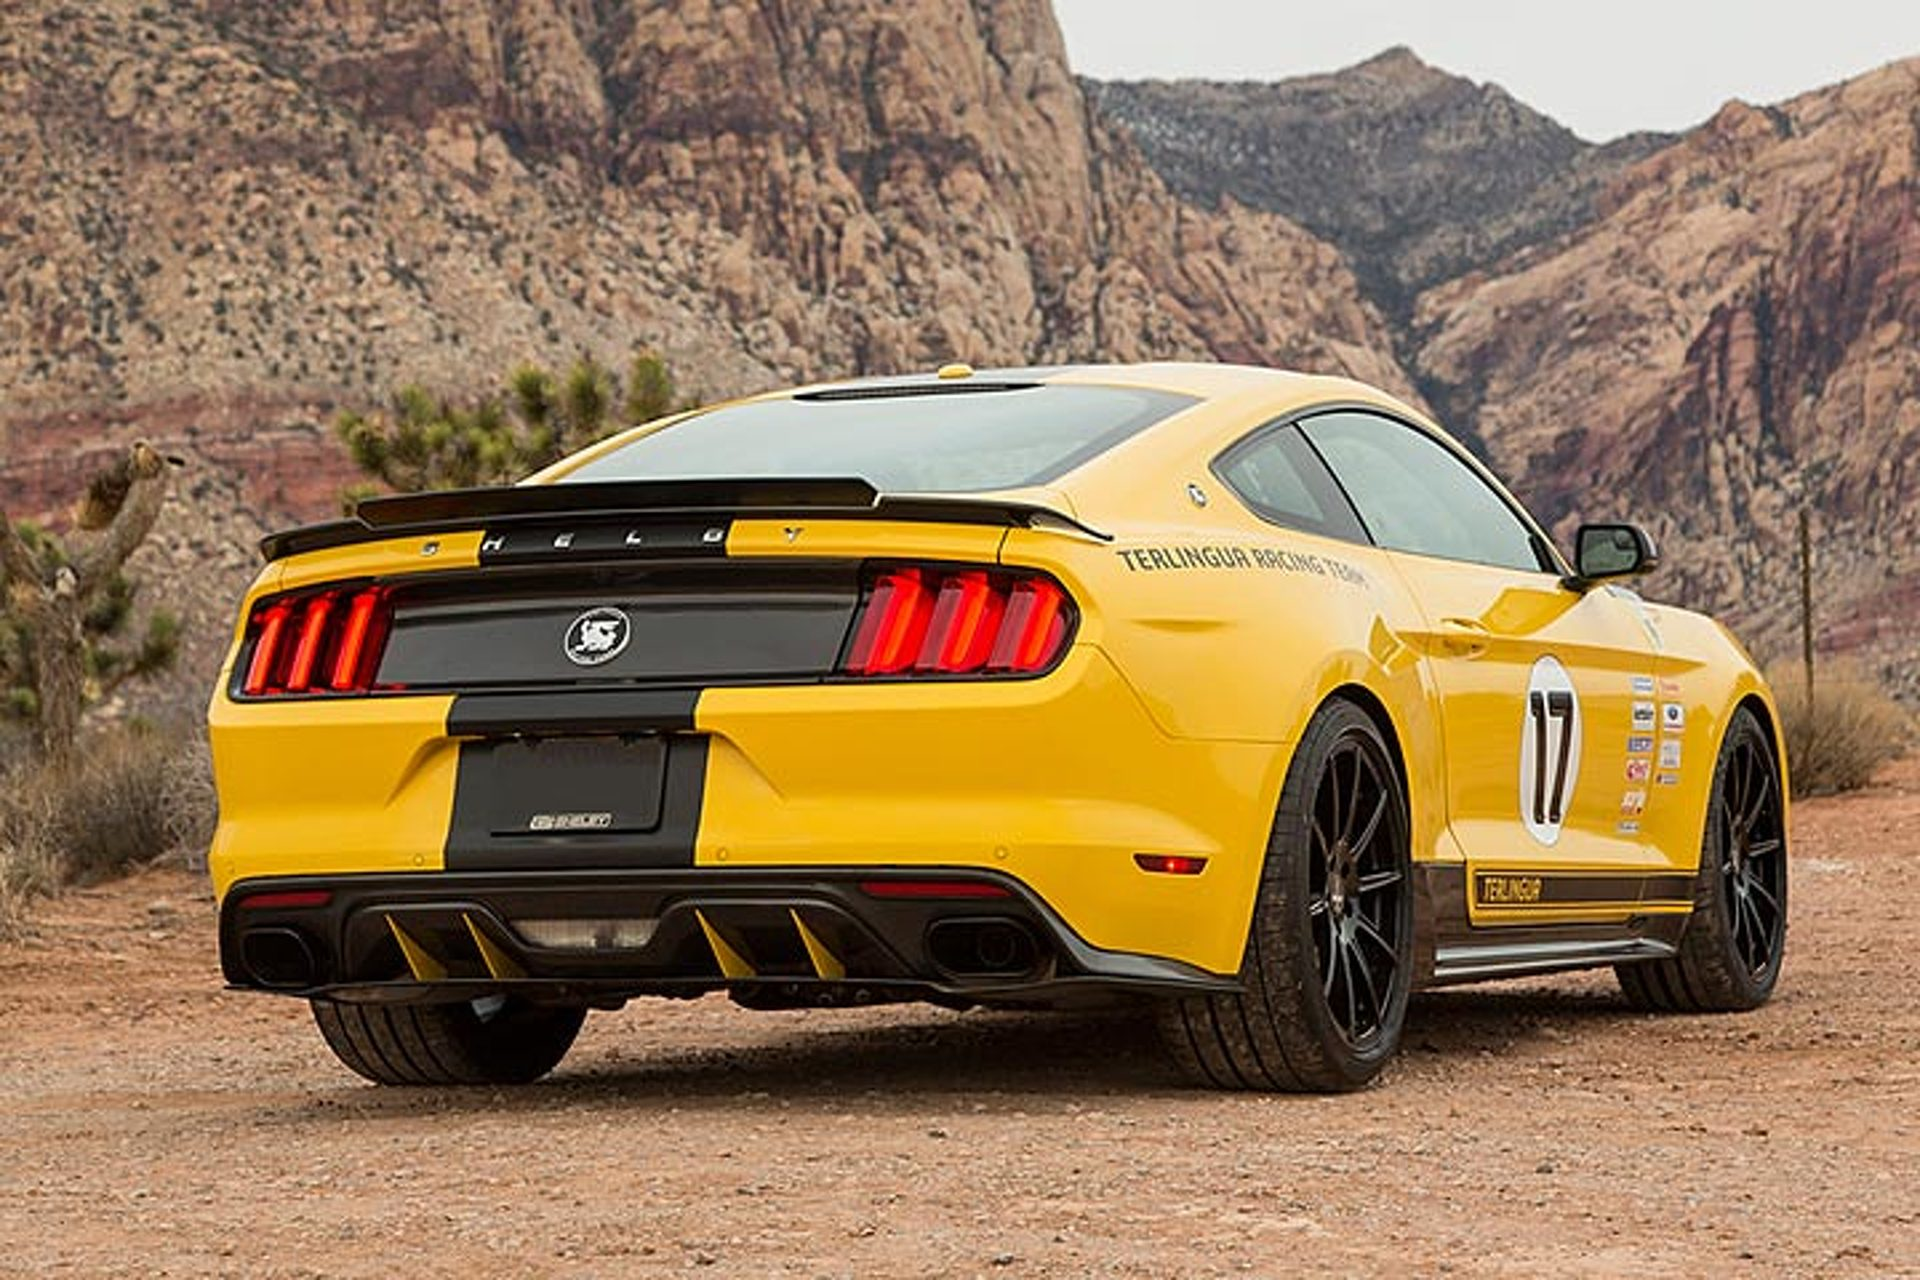 The Latest Shelby Mustang Is A 750hp Terlingua Track Star